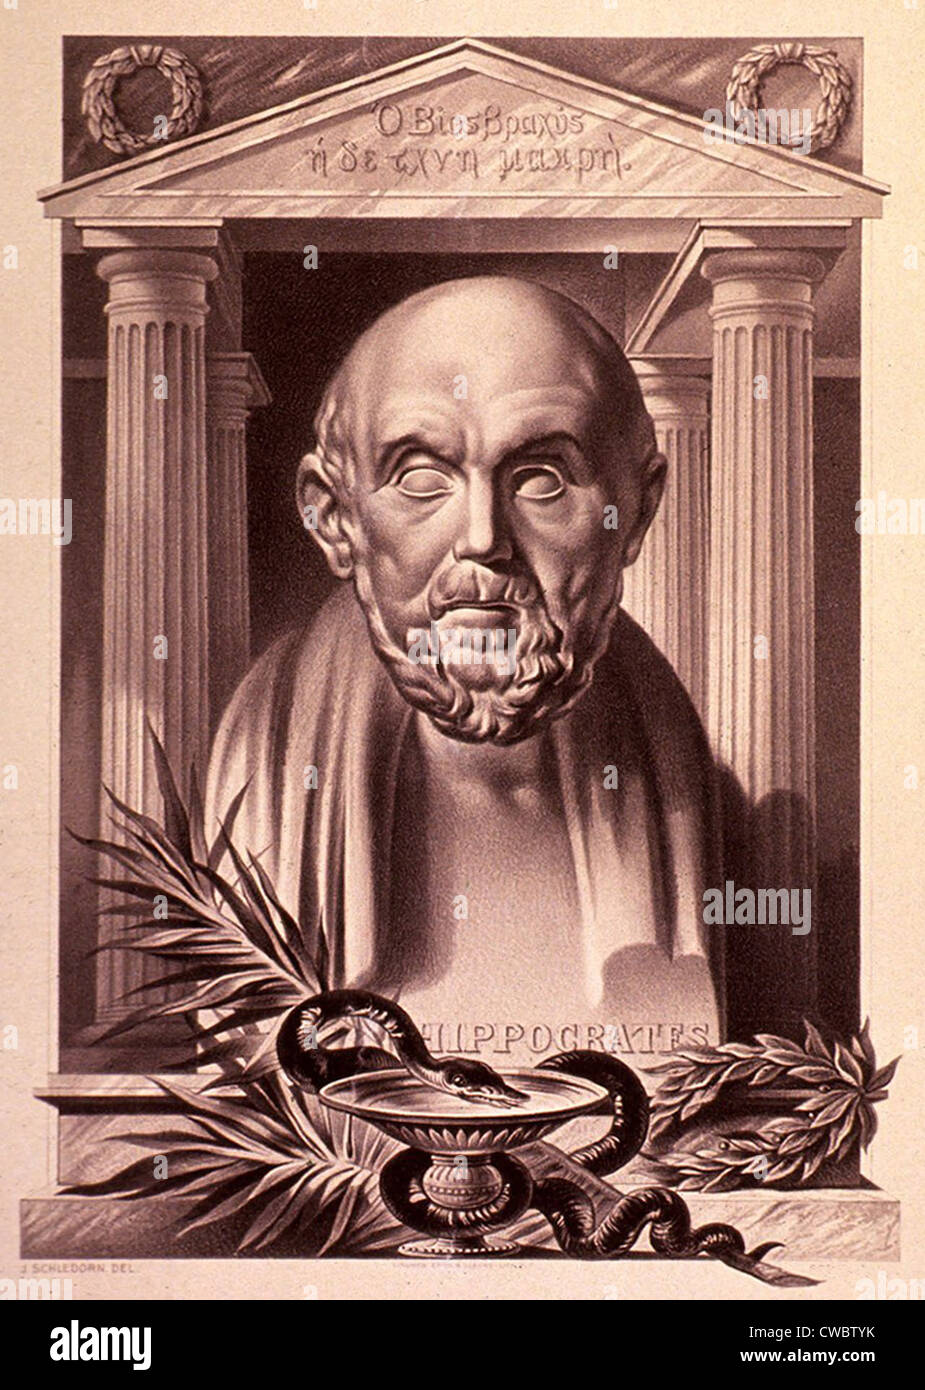 Hippocrates (460-375 BC). 20th century lithograph by Julius Schledorn. - Stock Image